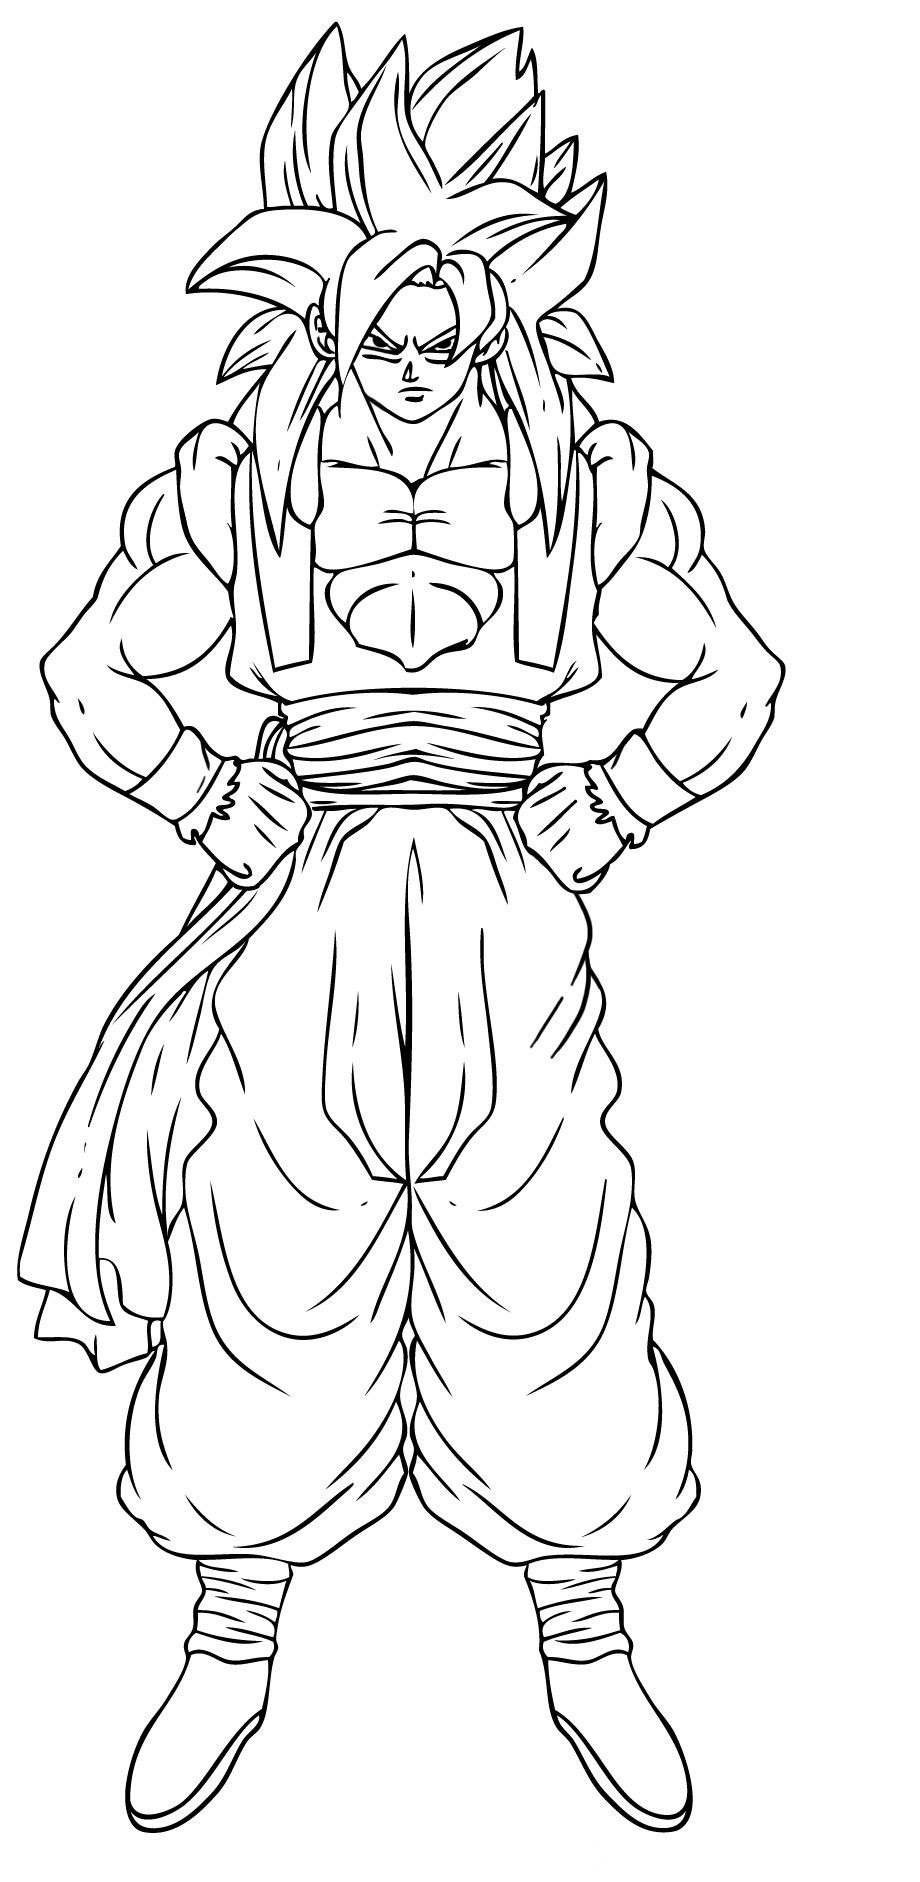 Goku coloring pages to download and print for free